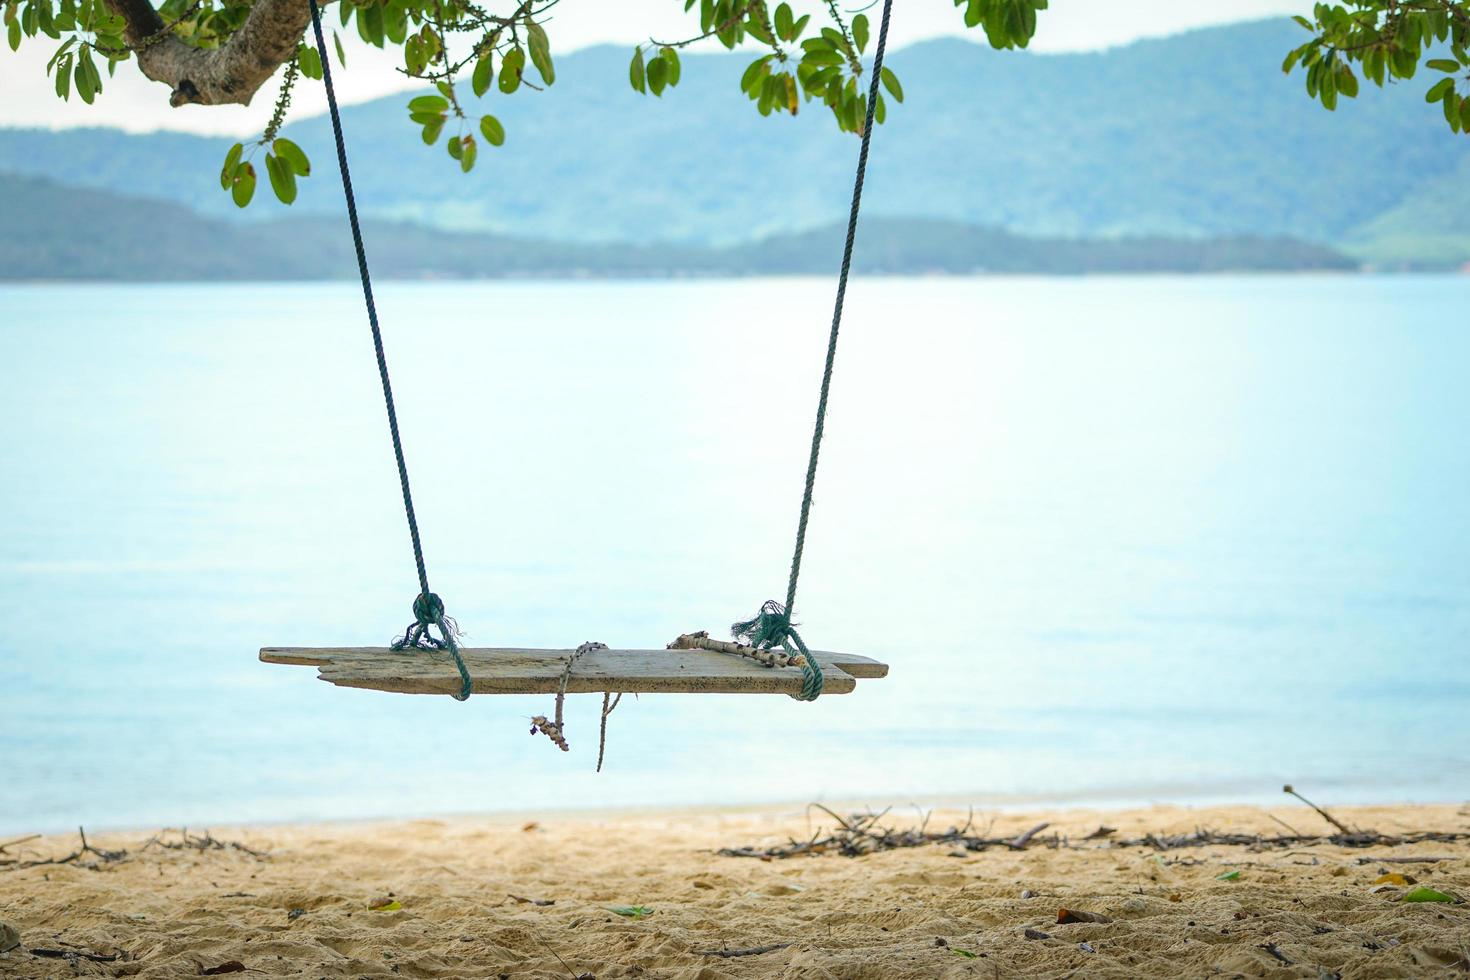 Closeup wooden swing hanging from the tree with old rope and blurred island in background photo